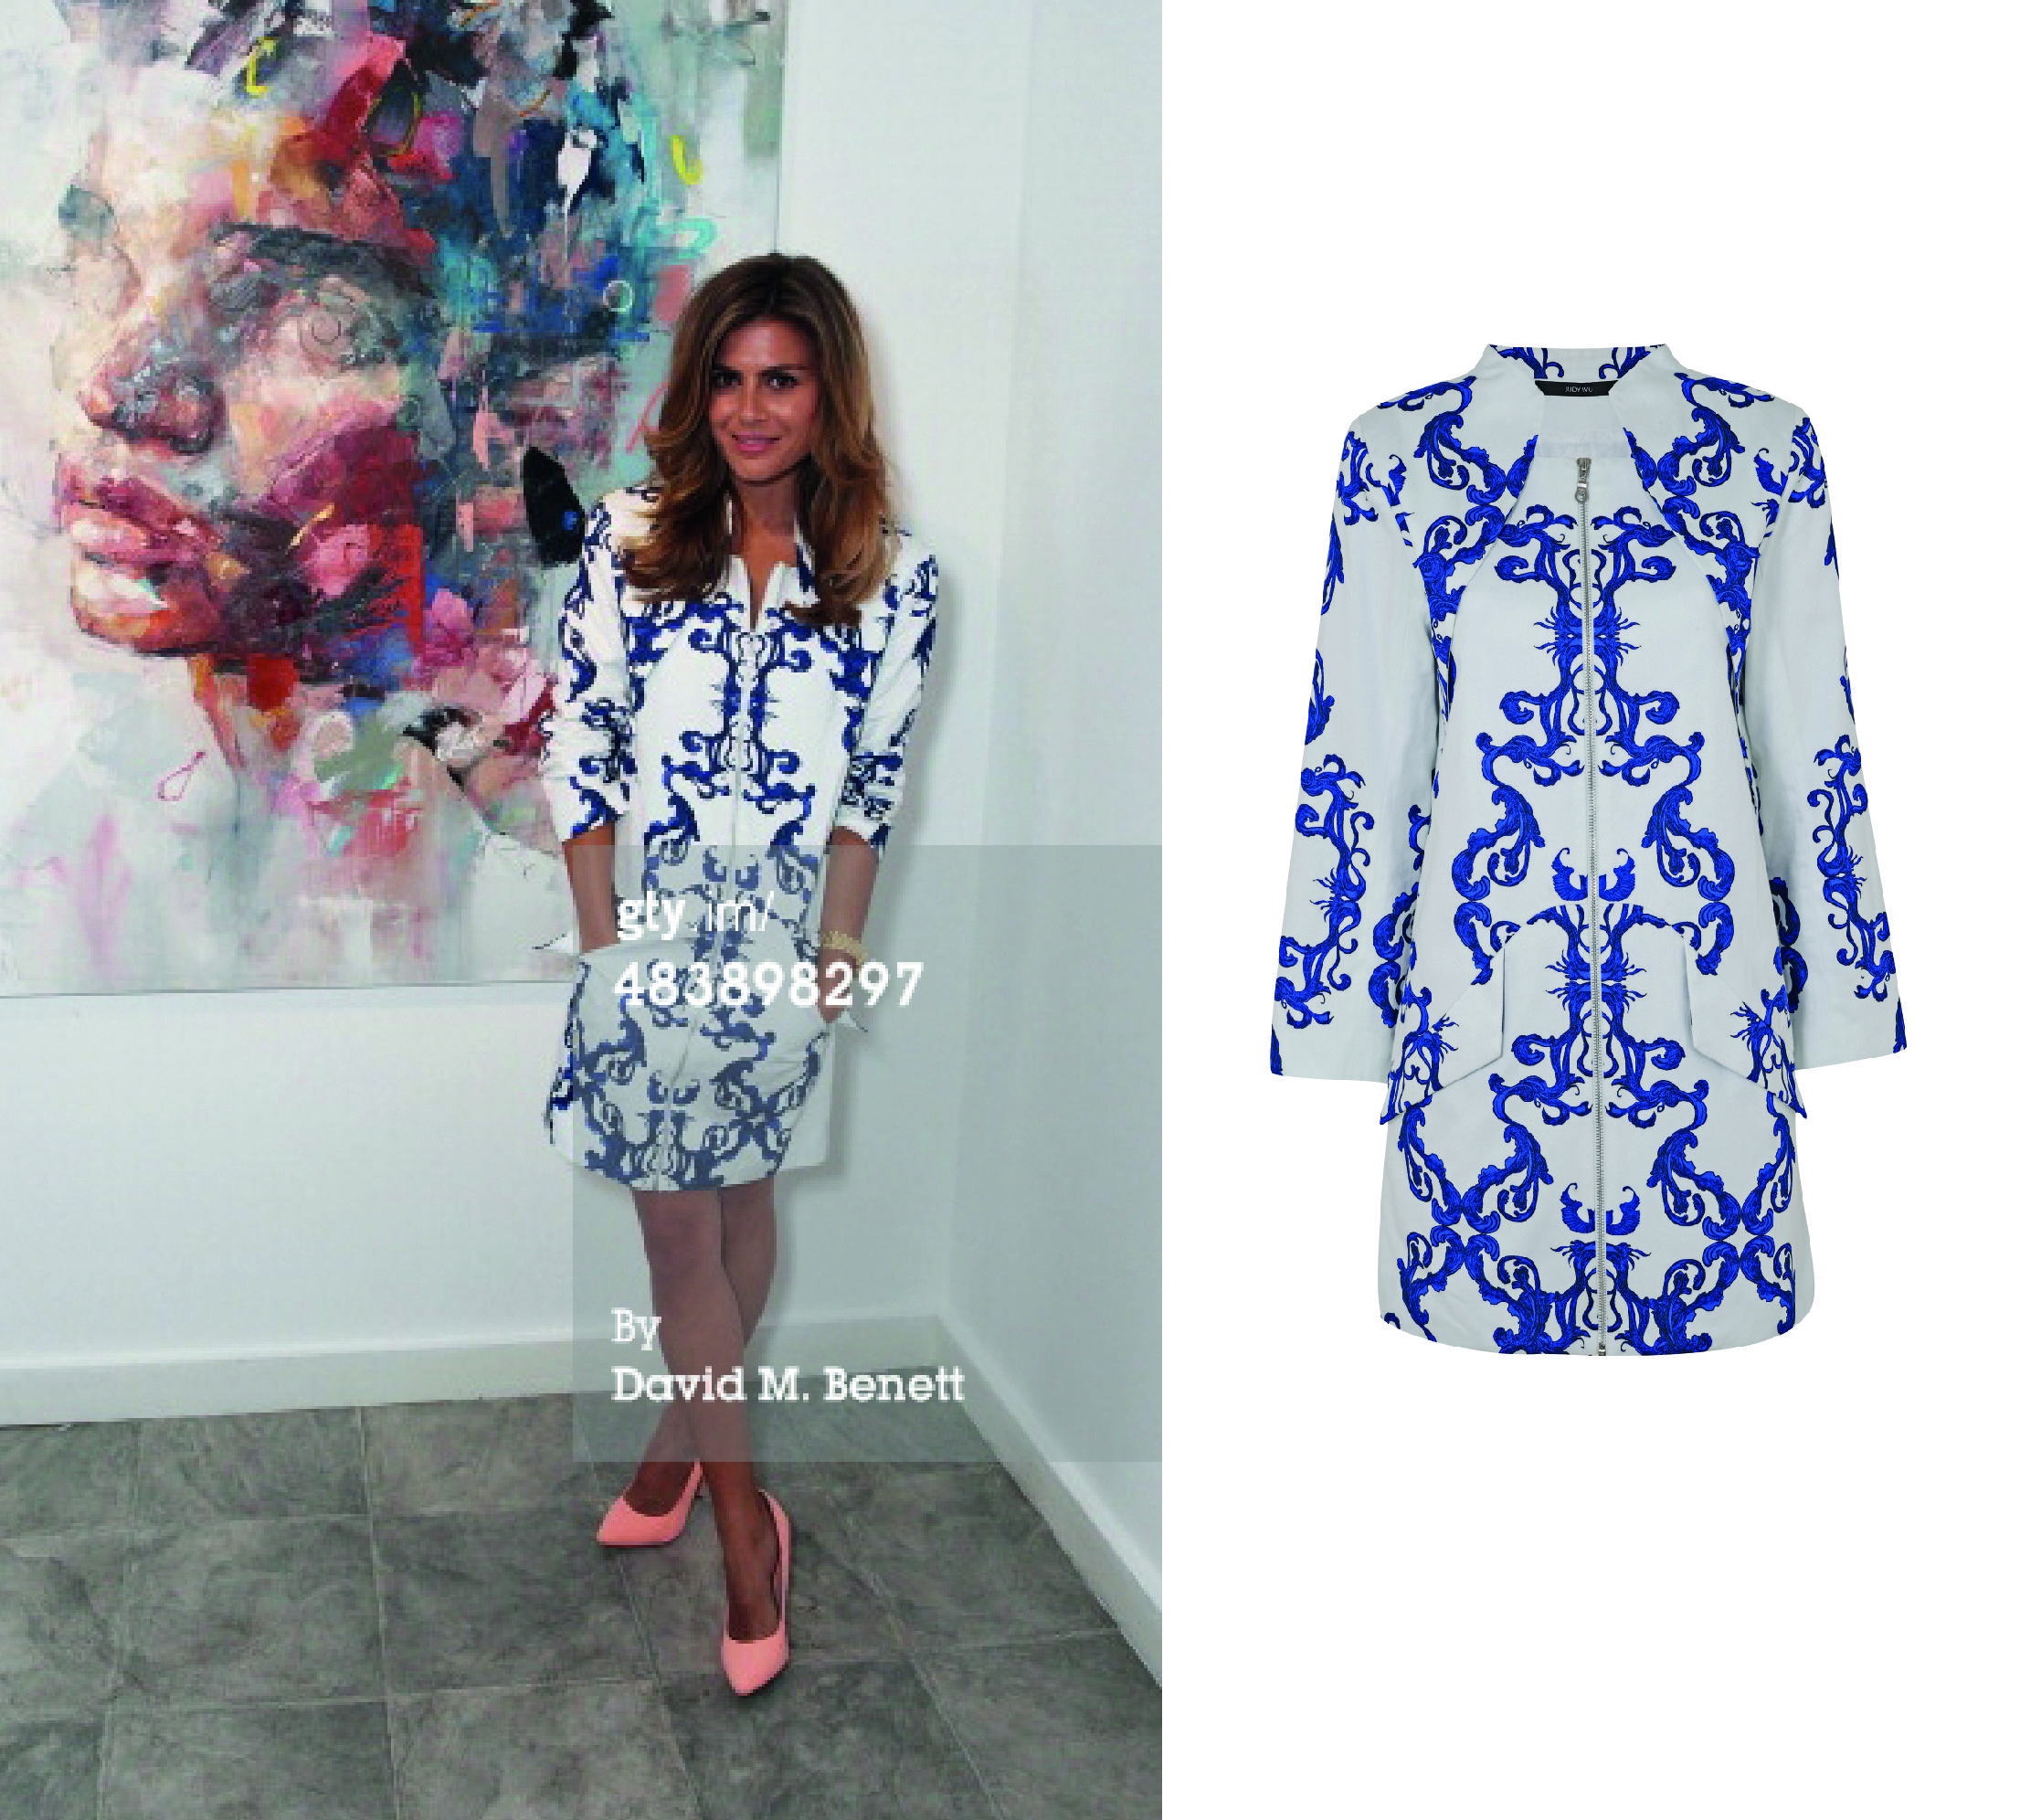 Zoe Hardman wearing JUDY WU SS14 at the 'Seven Deadly Sins' VIP Private View - March 2014